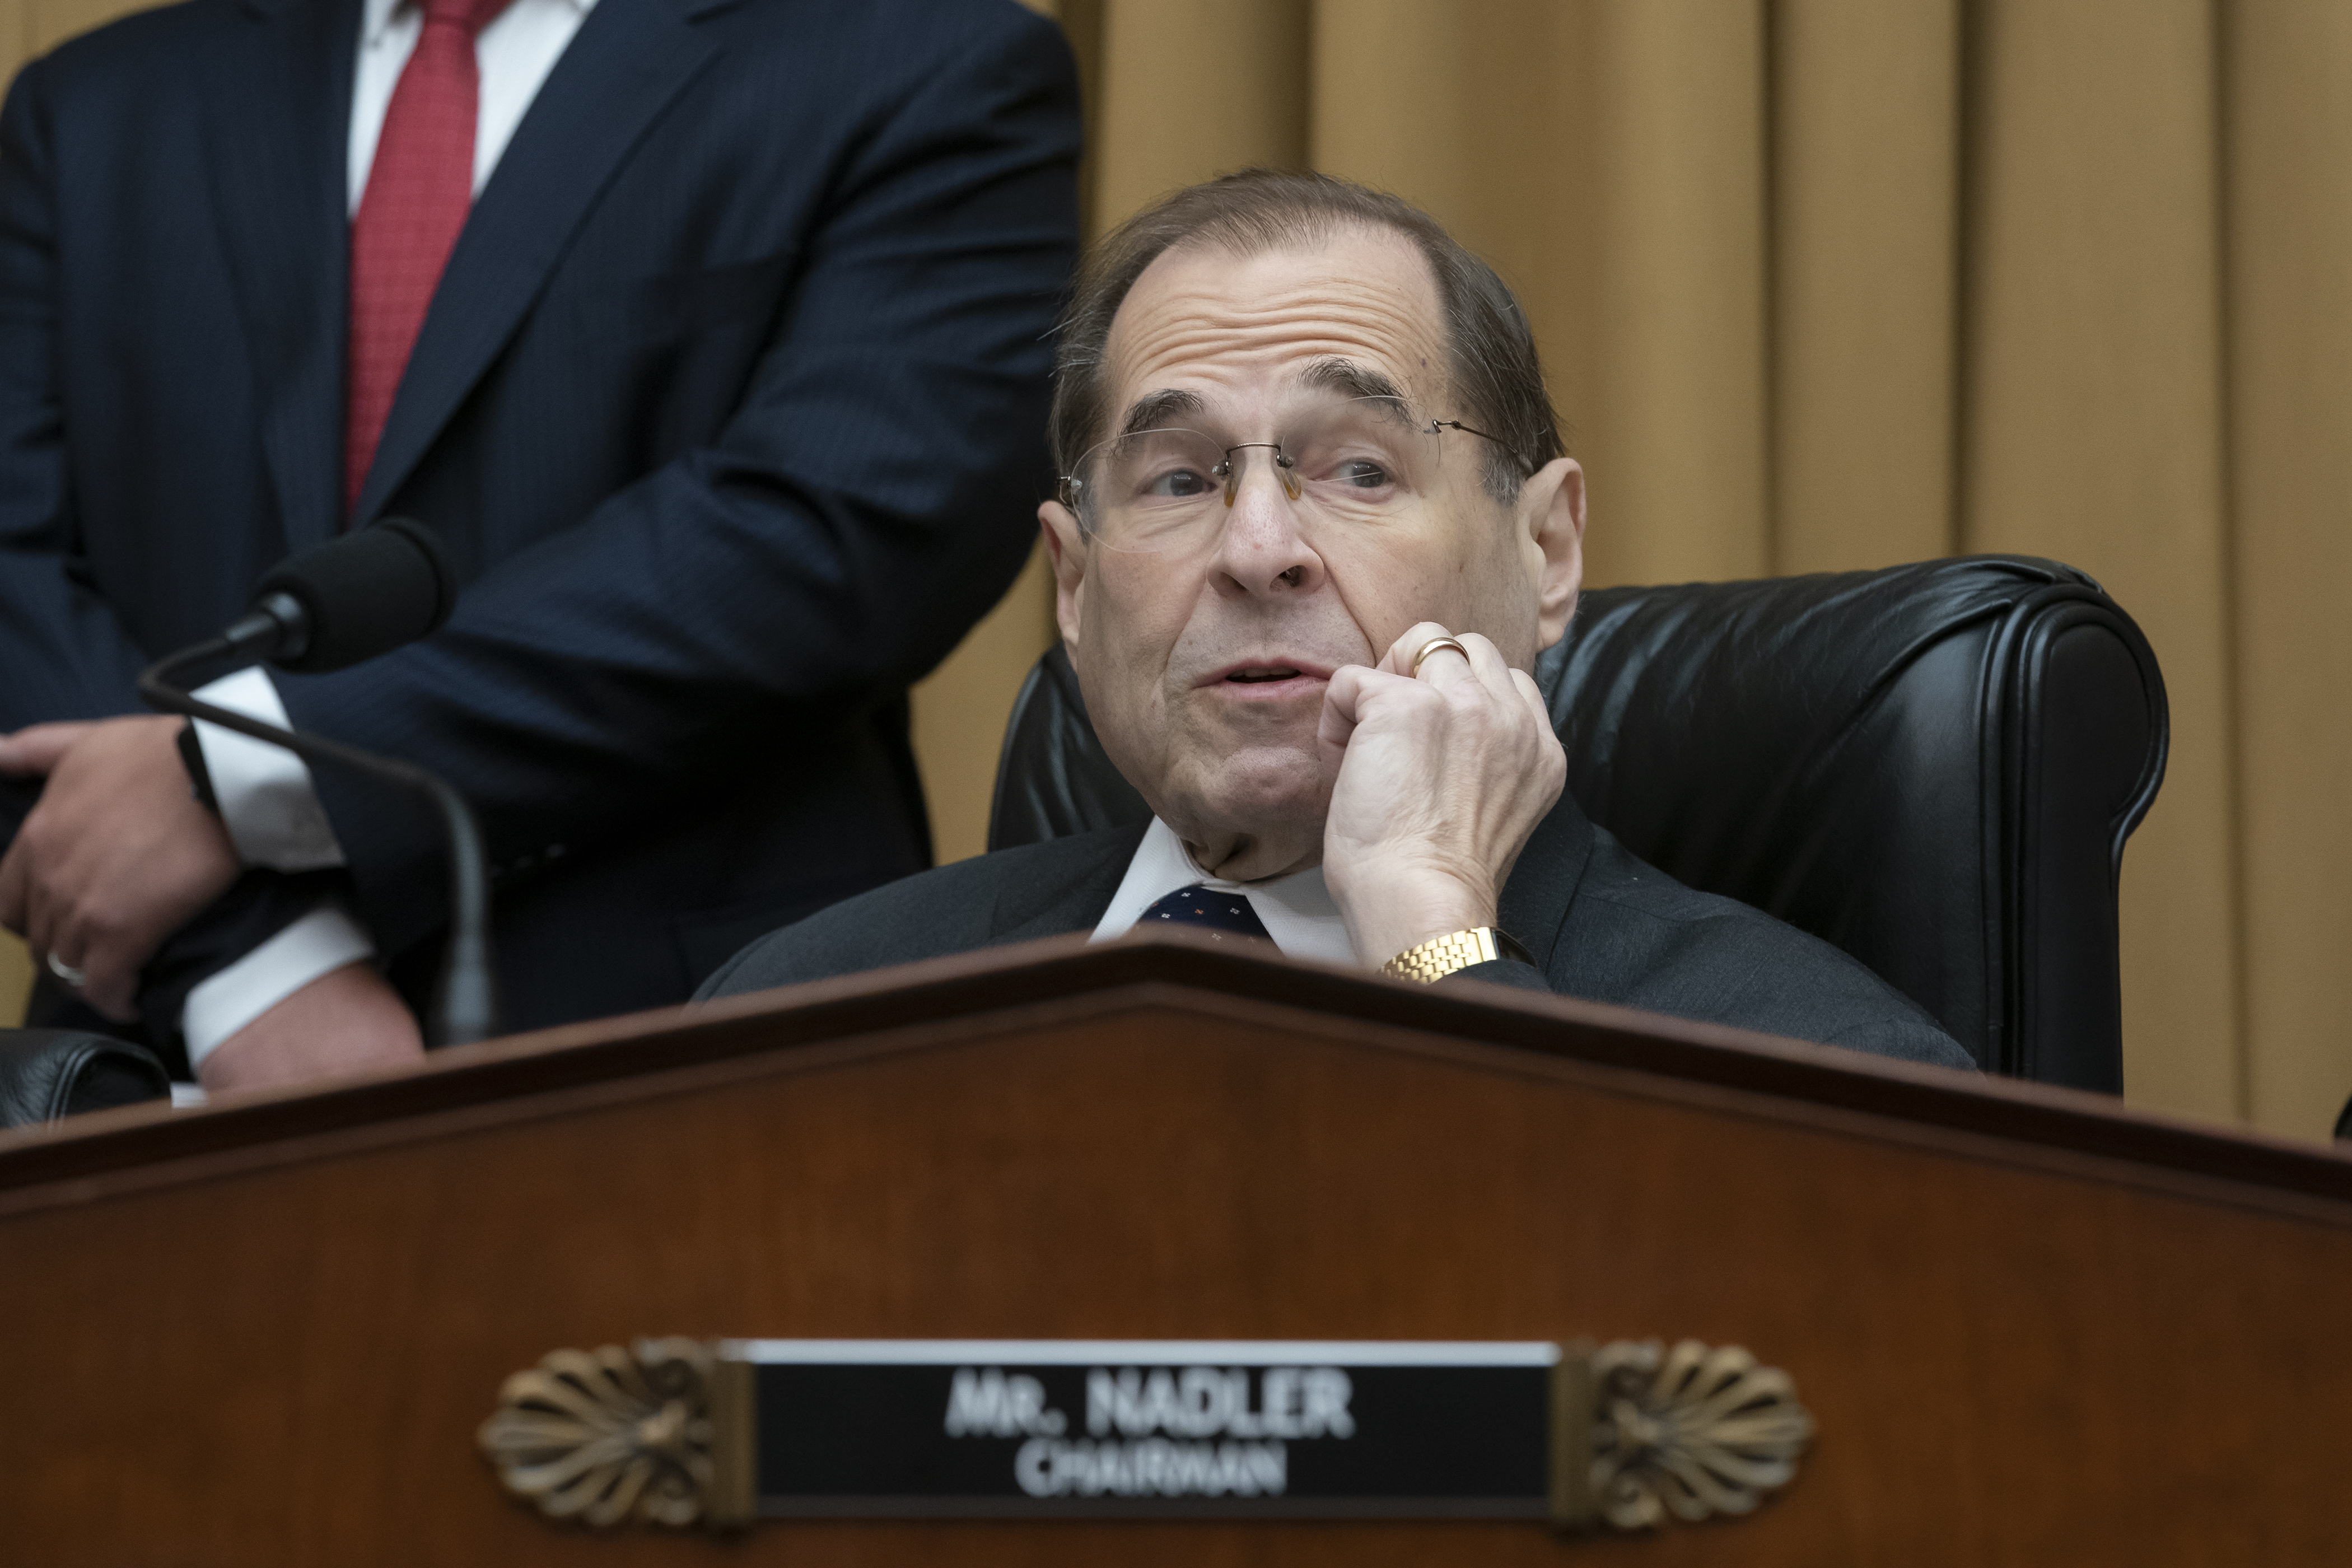 House Judiciary Committee Chair Jerrold Nadler waits to start a hearing on the Mueller report without witness Attorney General William Barr who refused to appear, on Capitol Hill in Washington, Thursday, May 2, 2019. The House Judiciary Committee is threatening to hold William Barr in contempt if he does not provide the full, unredacted Mueller report.